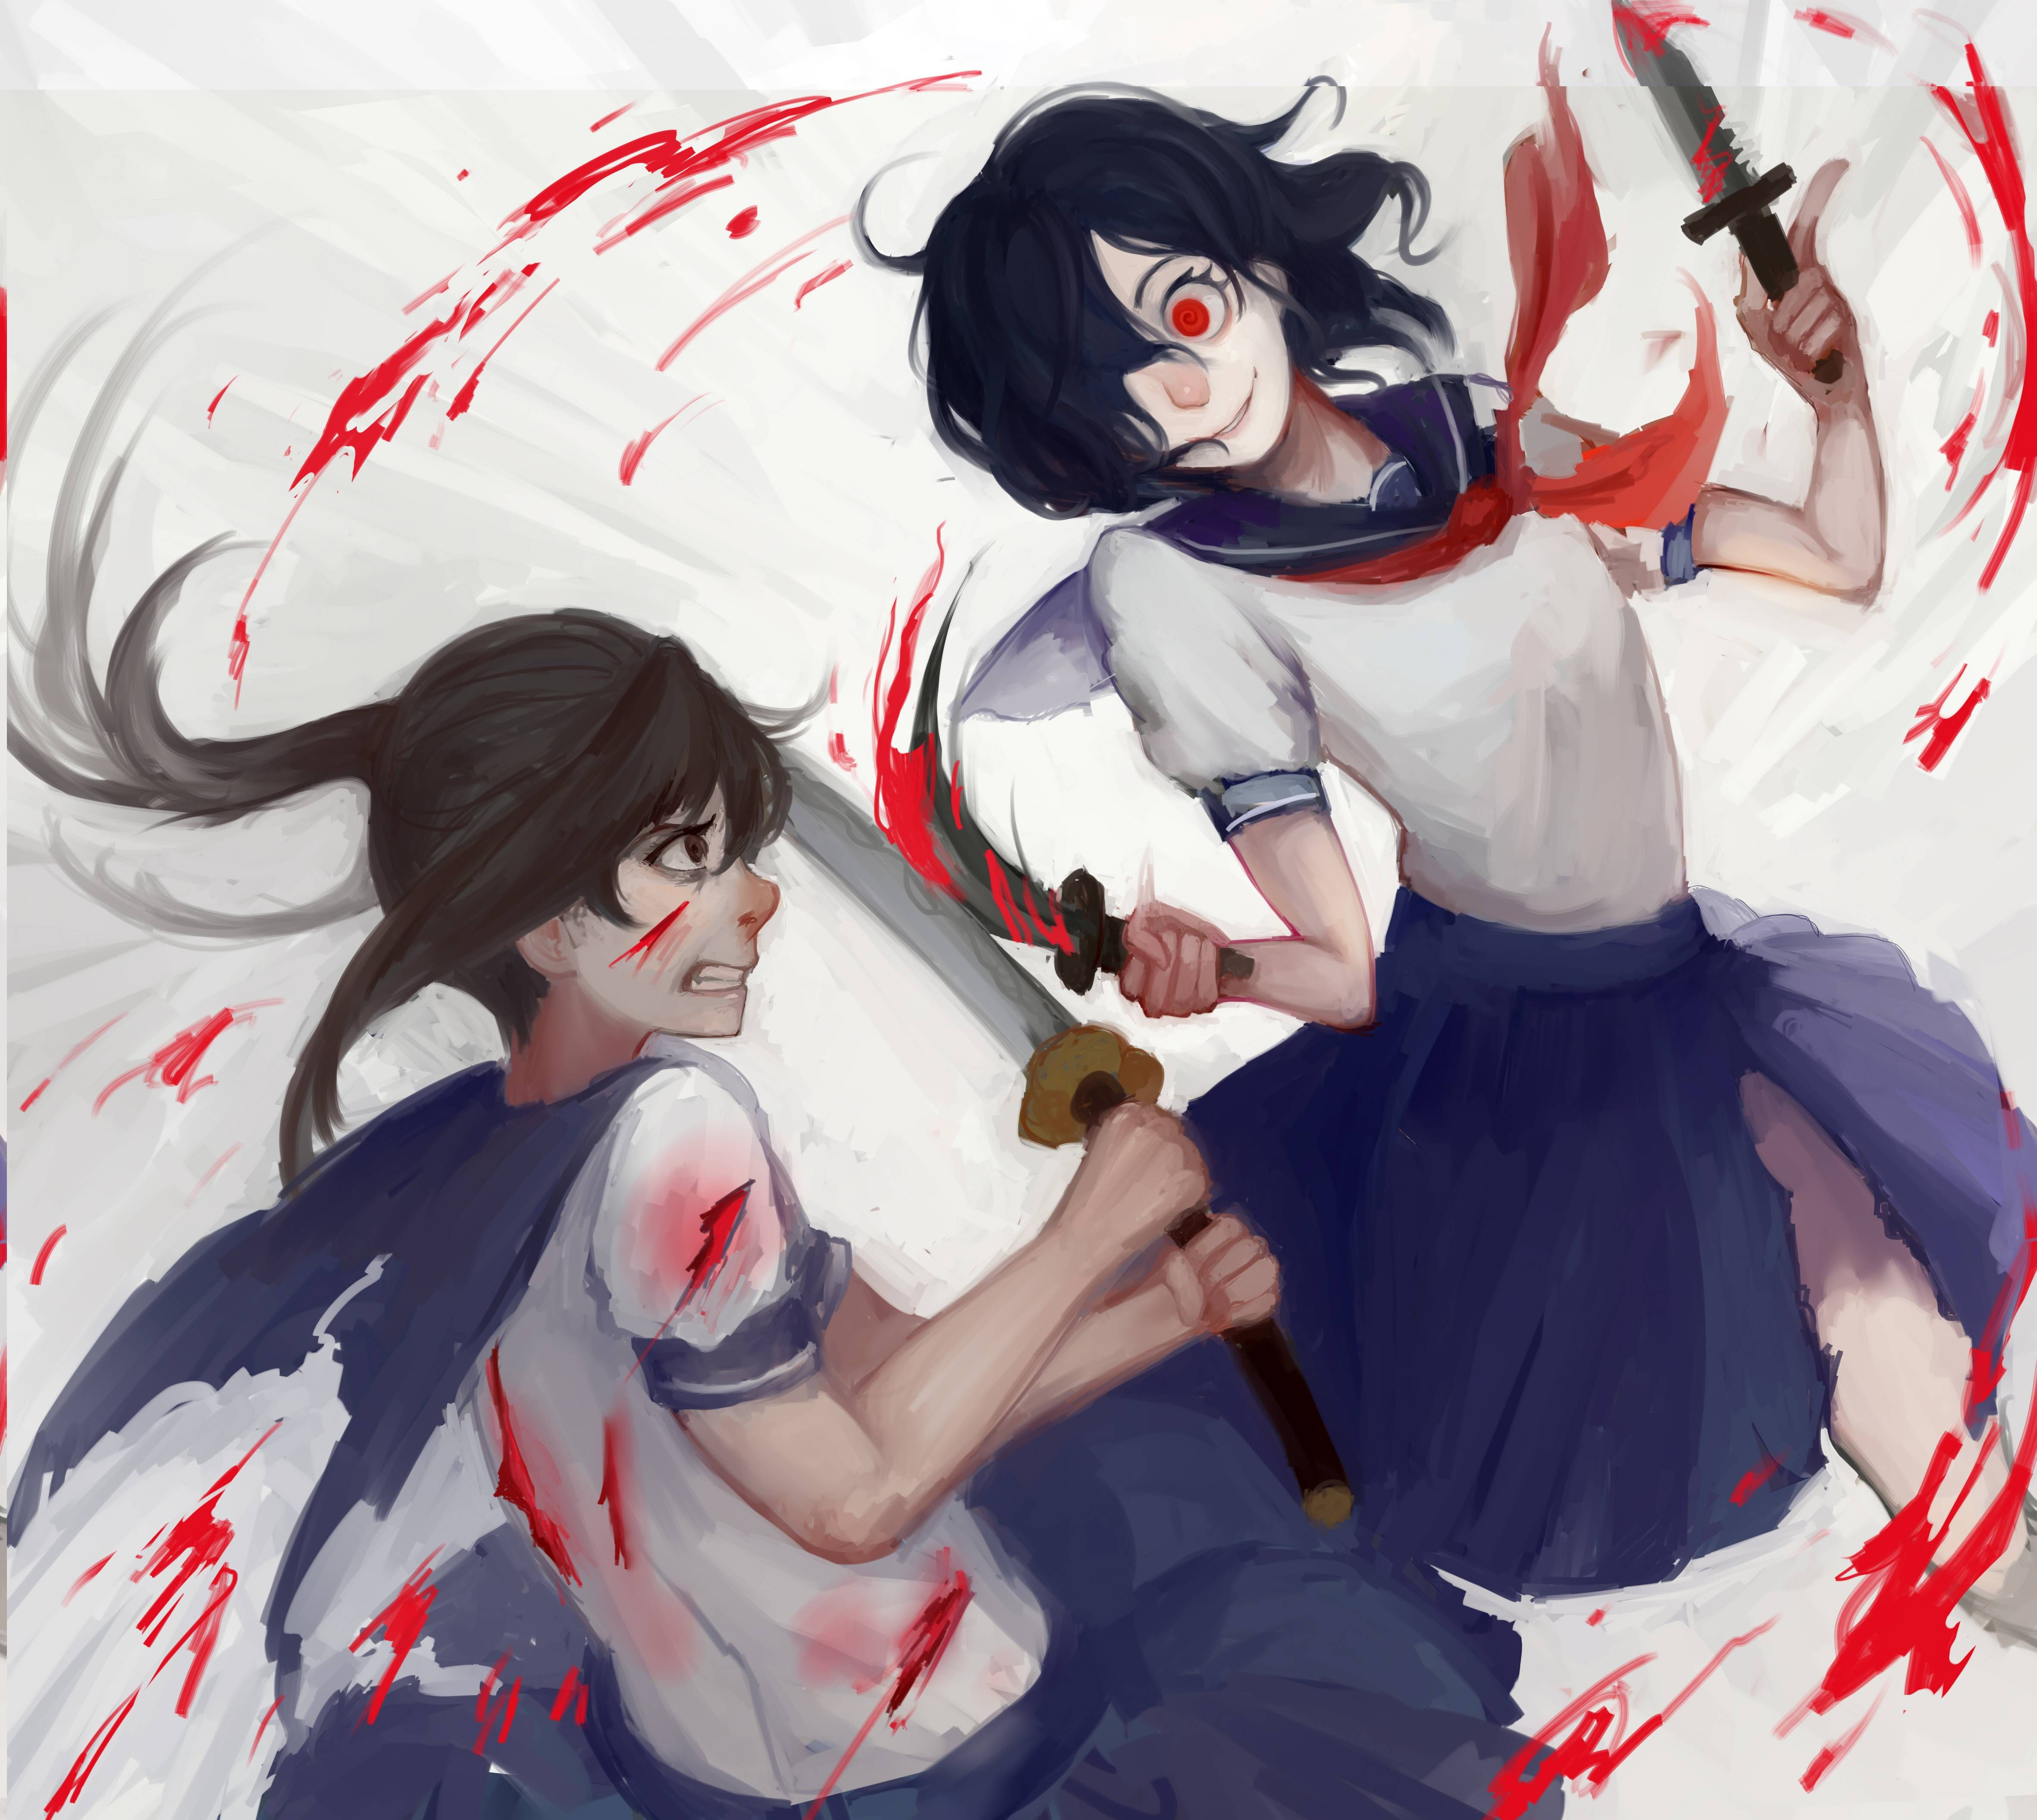 Game development blog yandere classmates anime pinterest nice - I M Guessing This Is A Fanart For Yandere Simulator